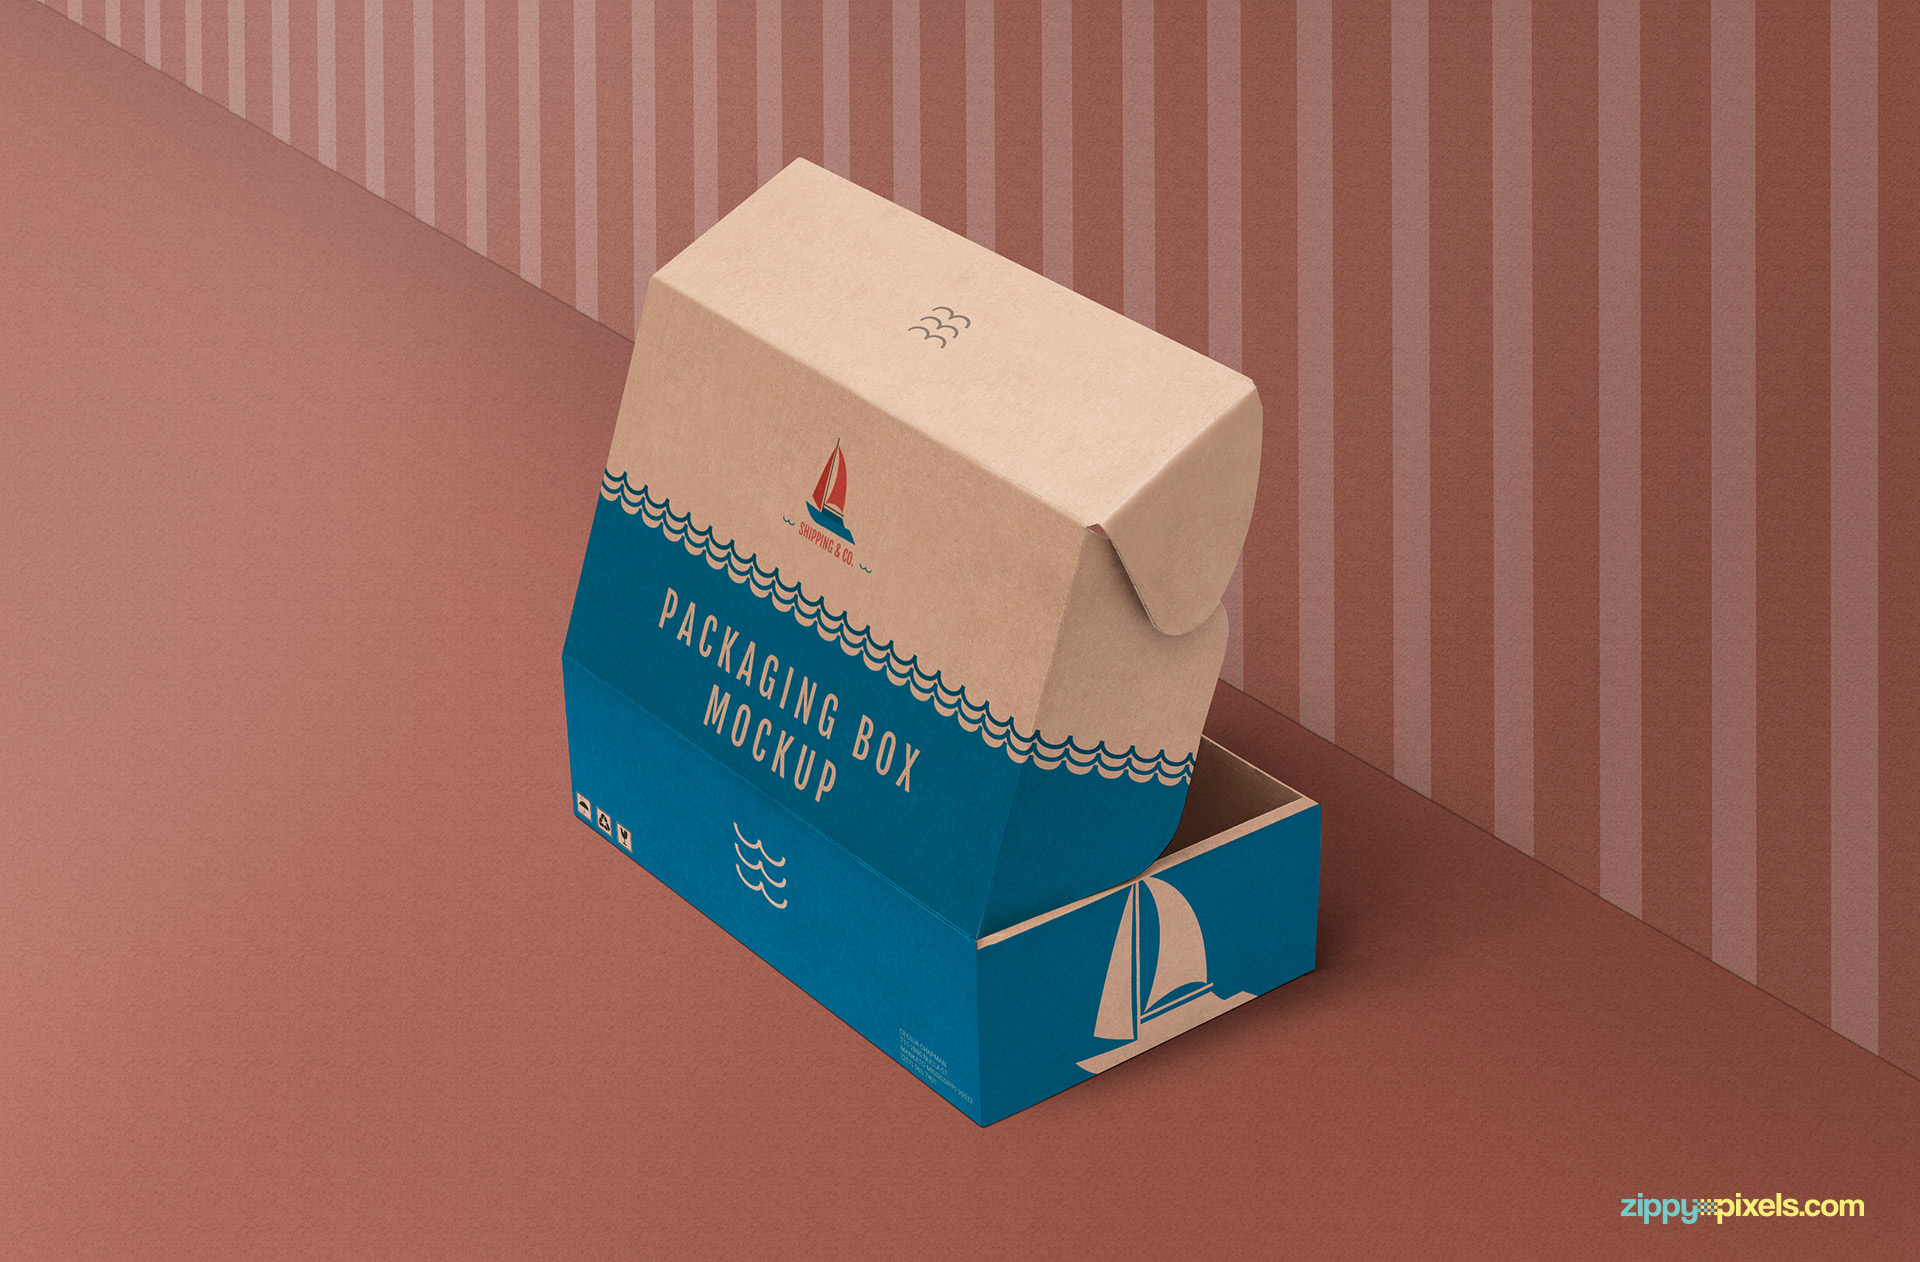 All visible sides of this kraft box mockup are customizable.